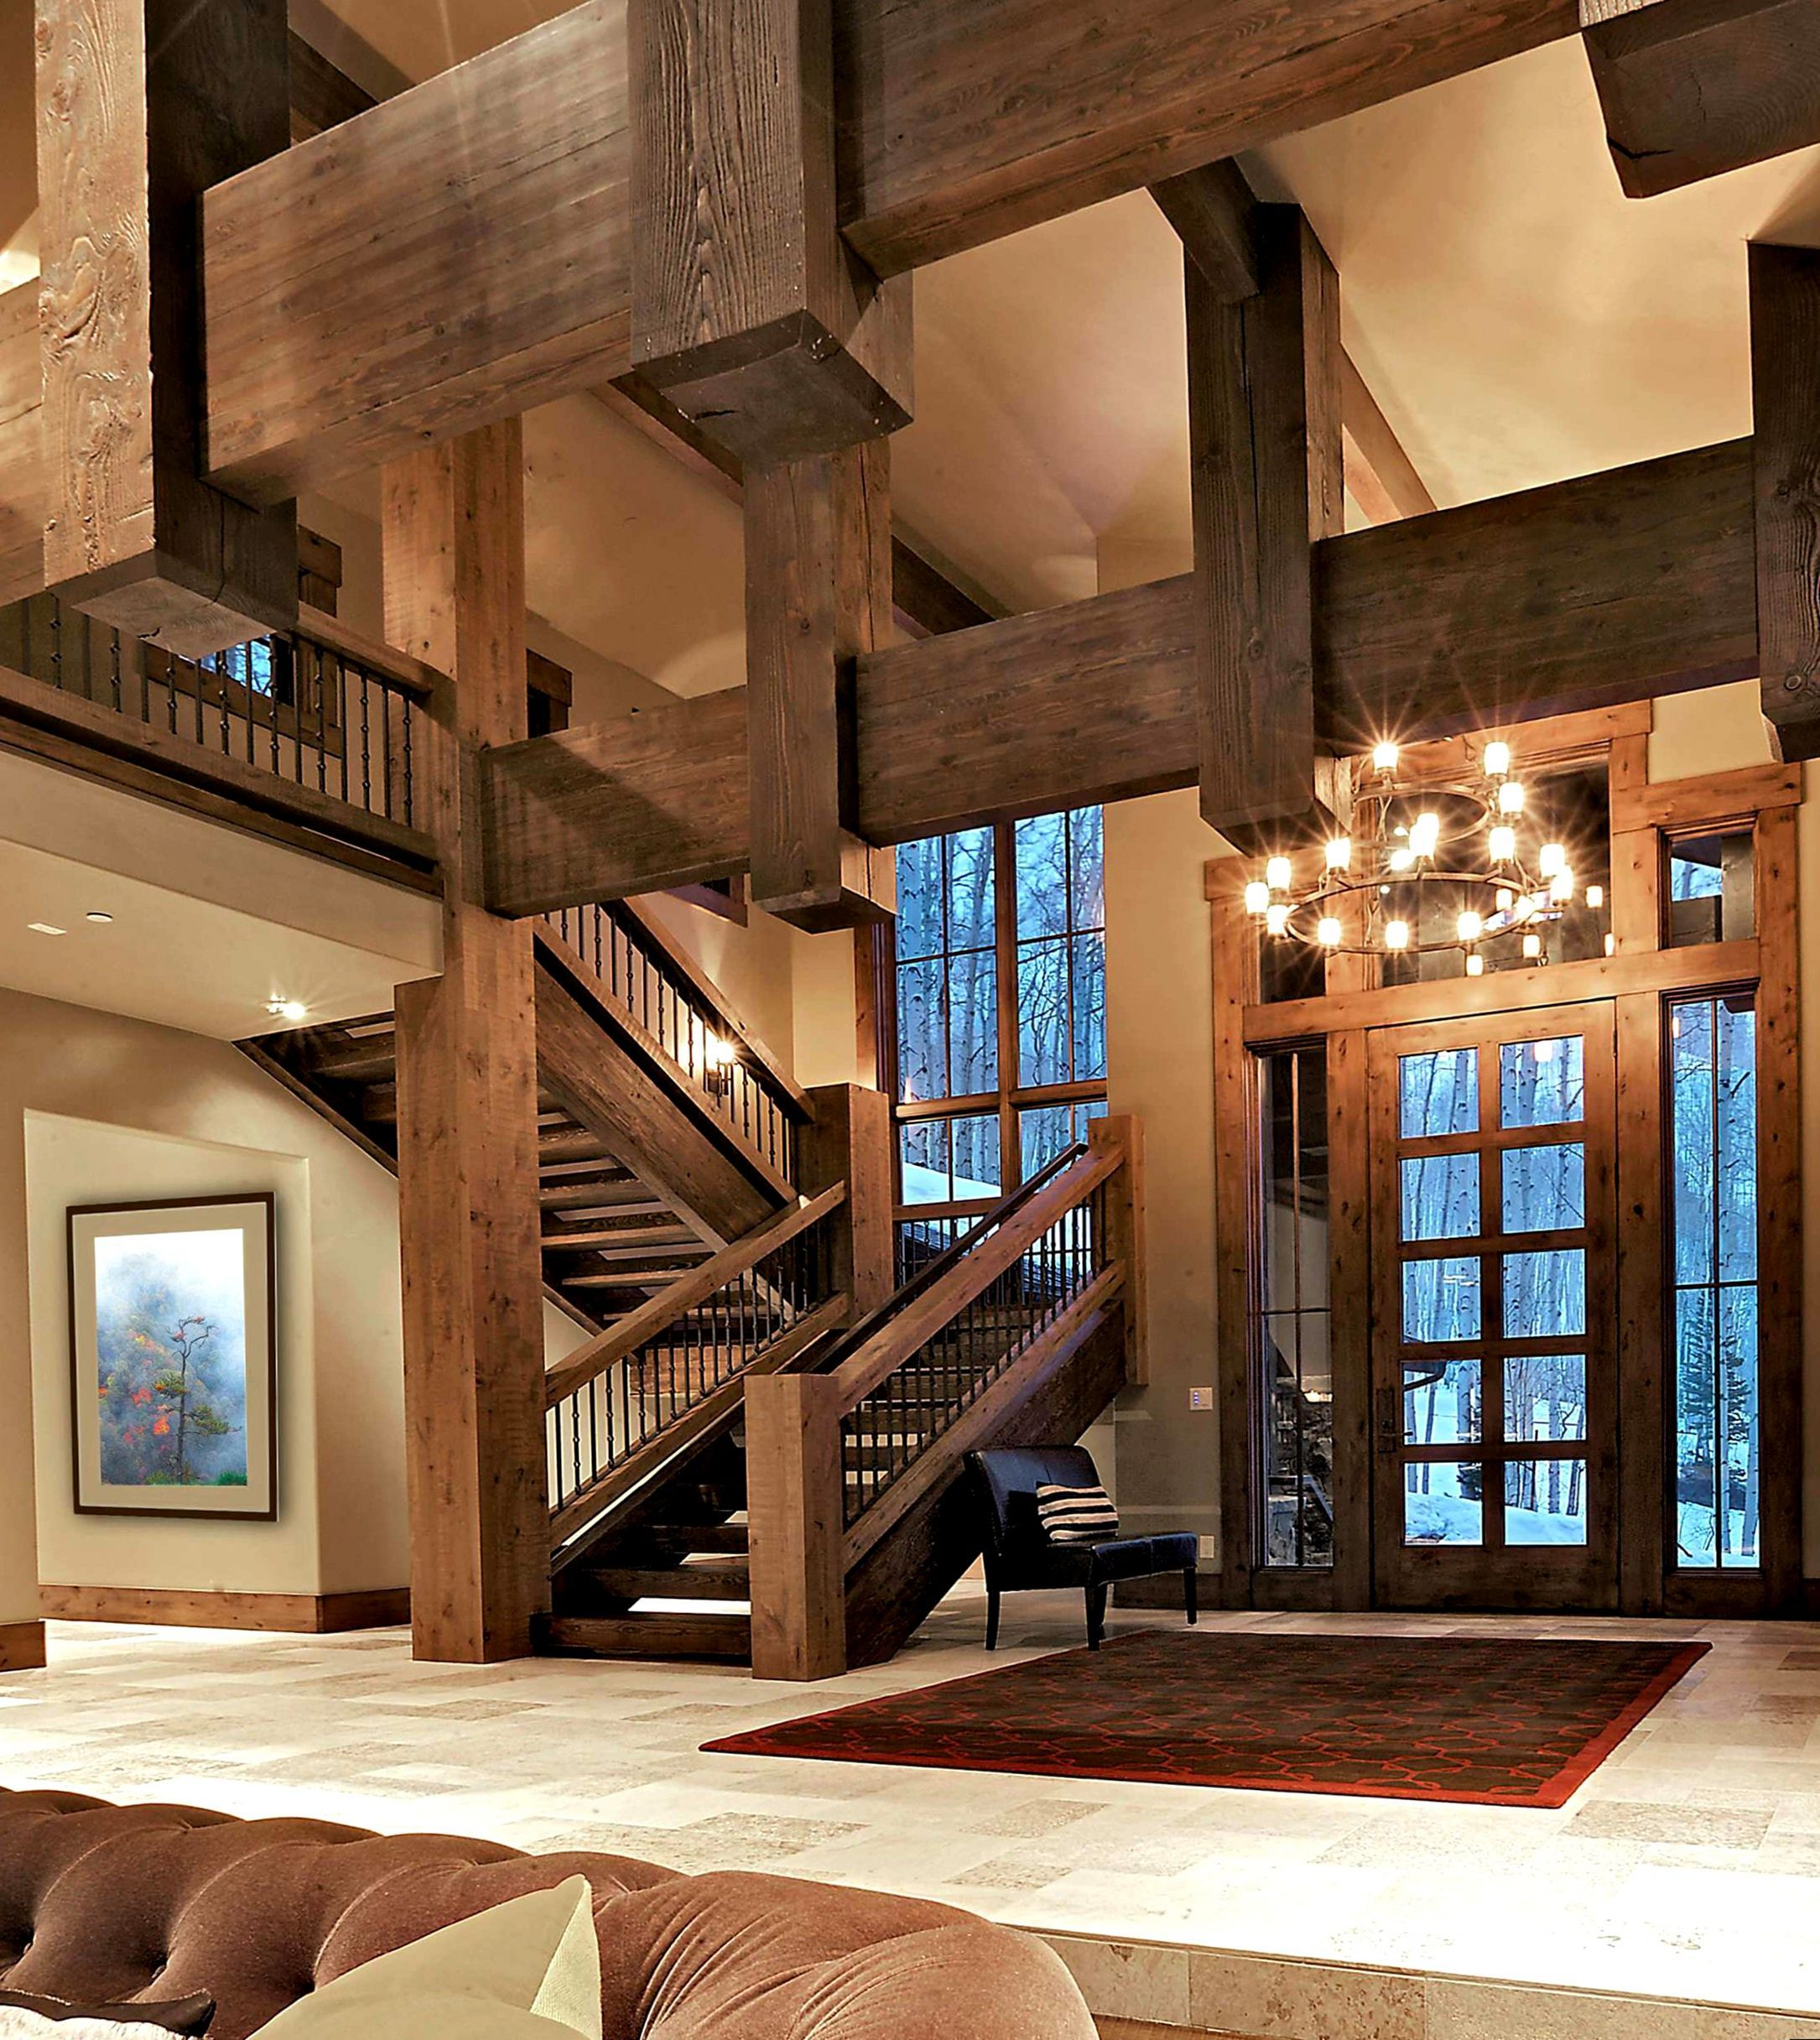 15 Incredible Mediterranean Staircase Designs That Will: Cool 15 Amazing Rustic Stair Design Ideas For You To Have